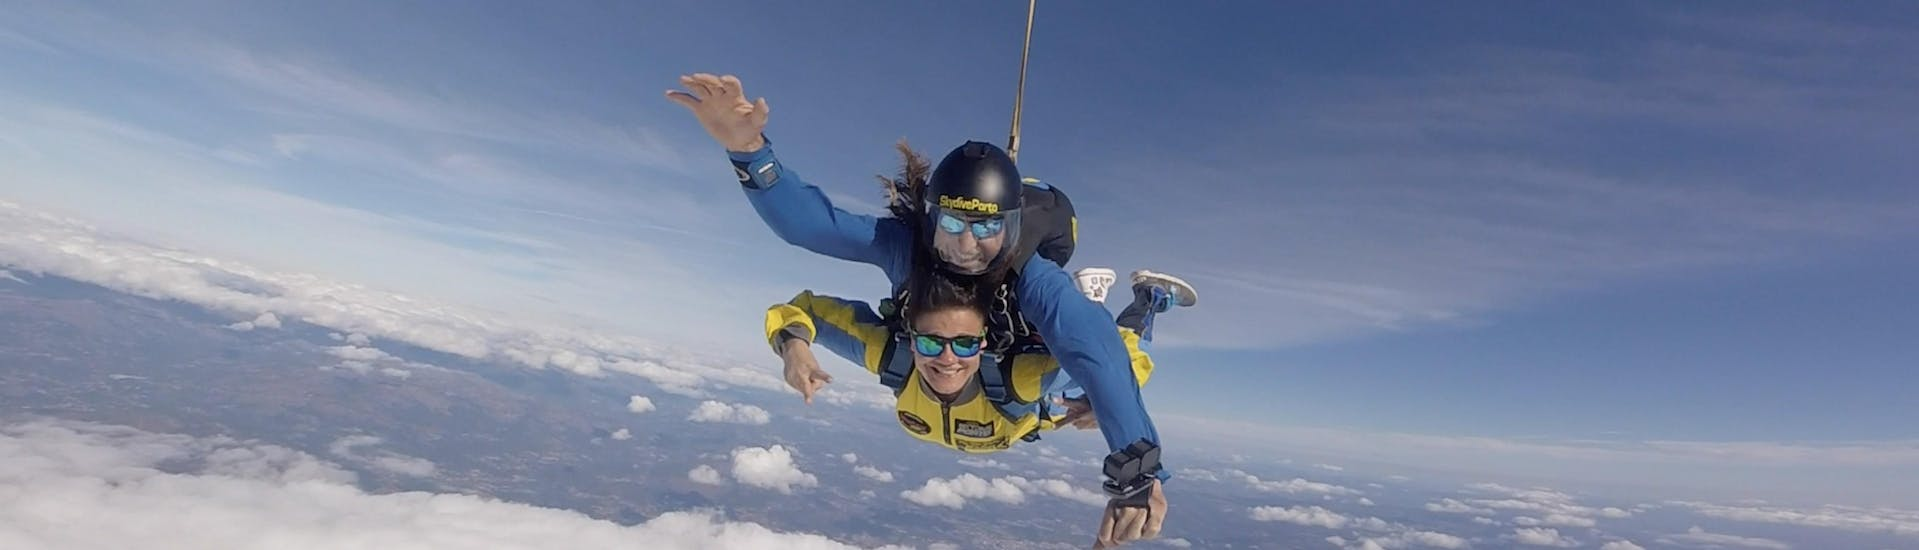 A tandem master from Skydive Porto and his Student are smiling at the camera as the fall freely through the skies while skydiving in Proença-a-Nova.